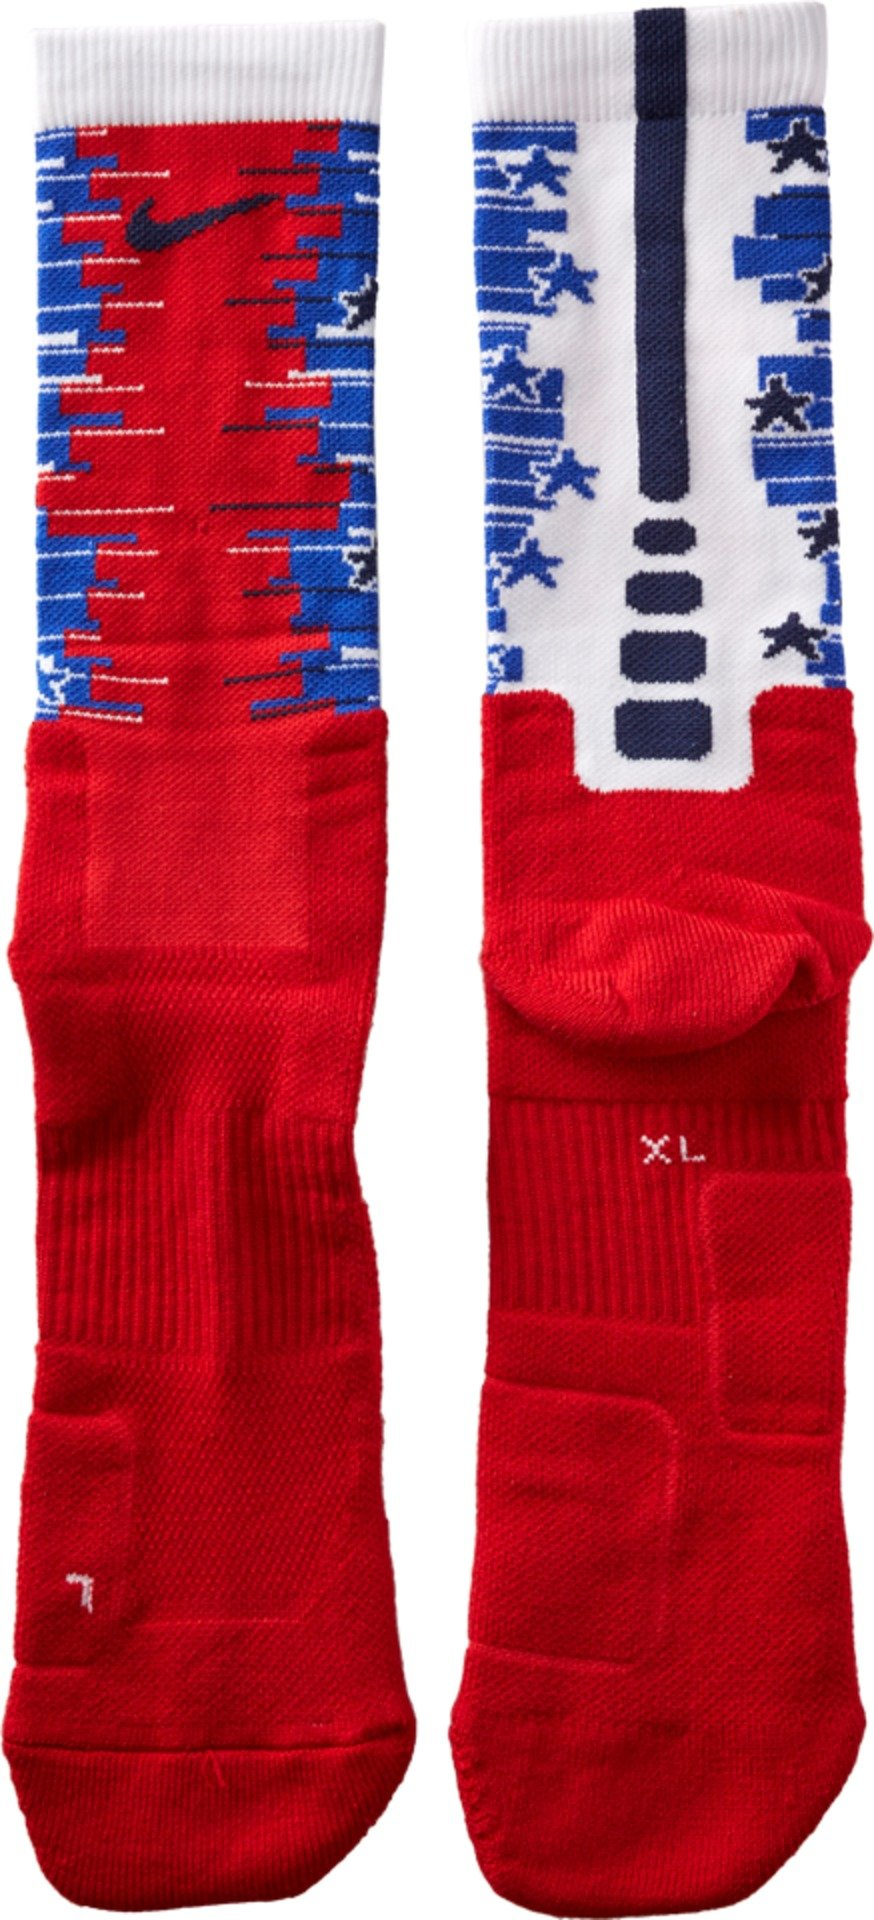 {SX7273-657} UNISEX NIKE ELITE CREW-1.5 4TH OF JULY RED/WHITE/MIDNIGHT NAVY (LARGE) by Nike